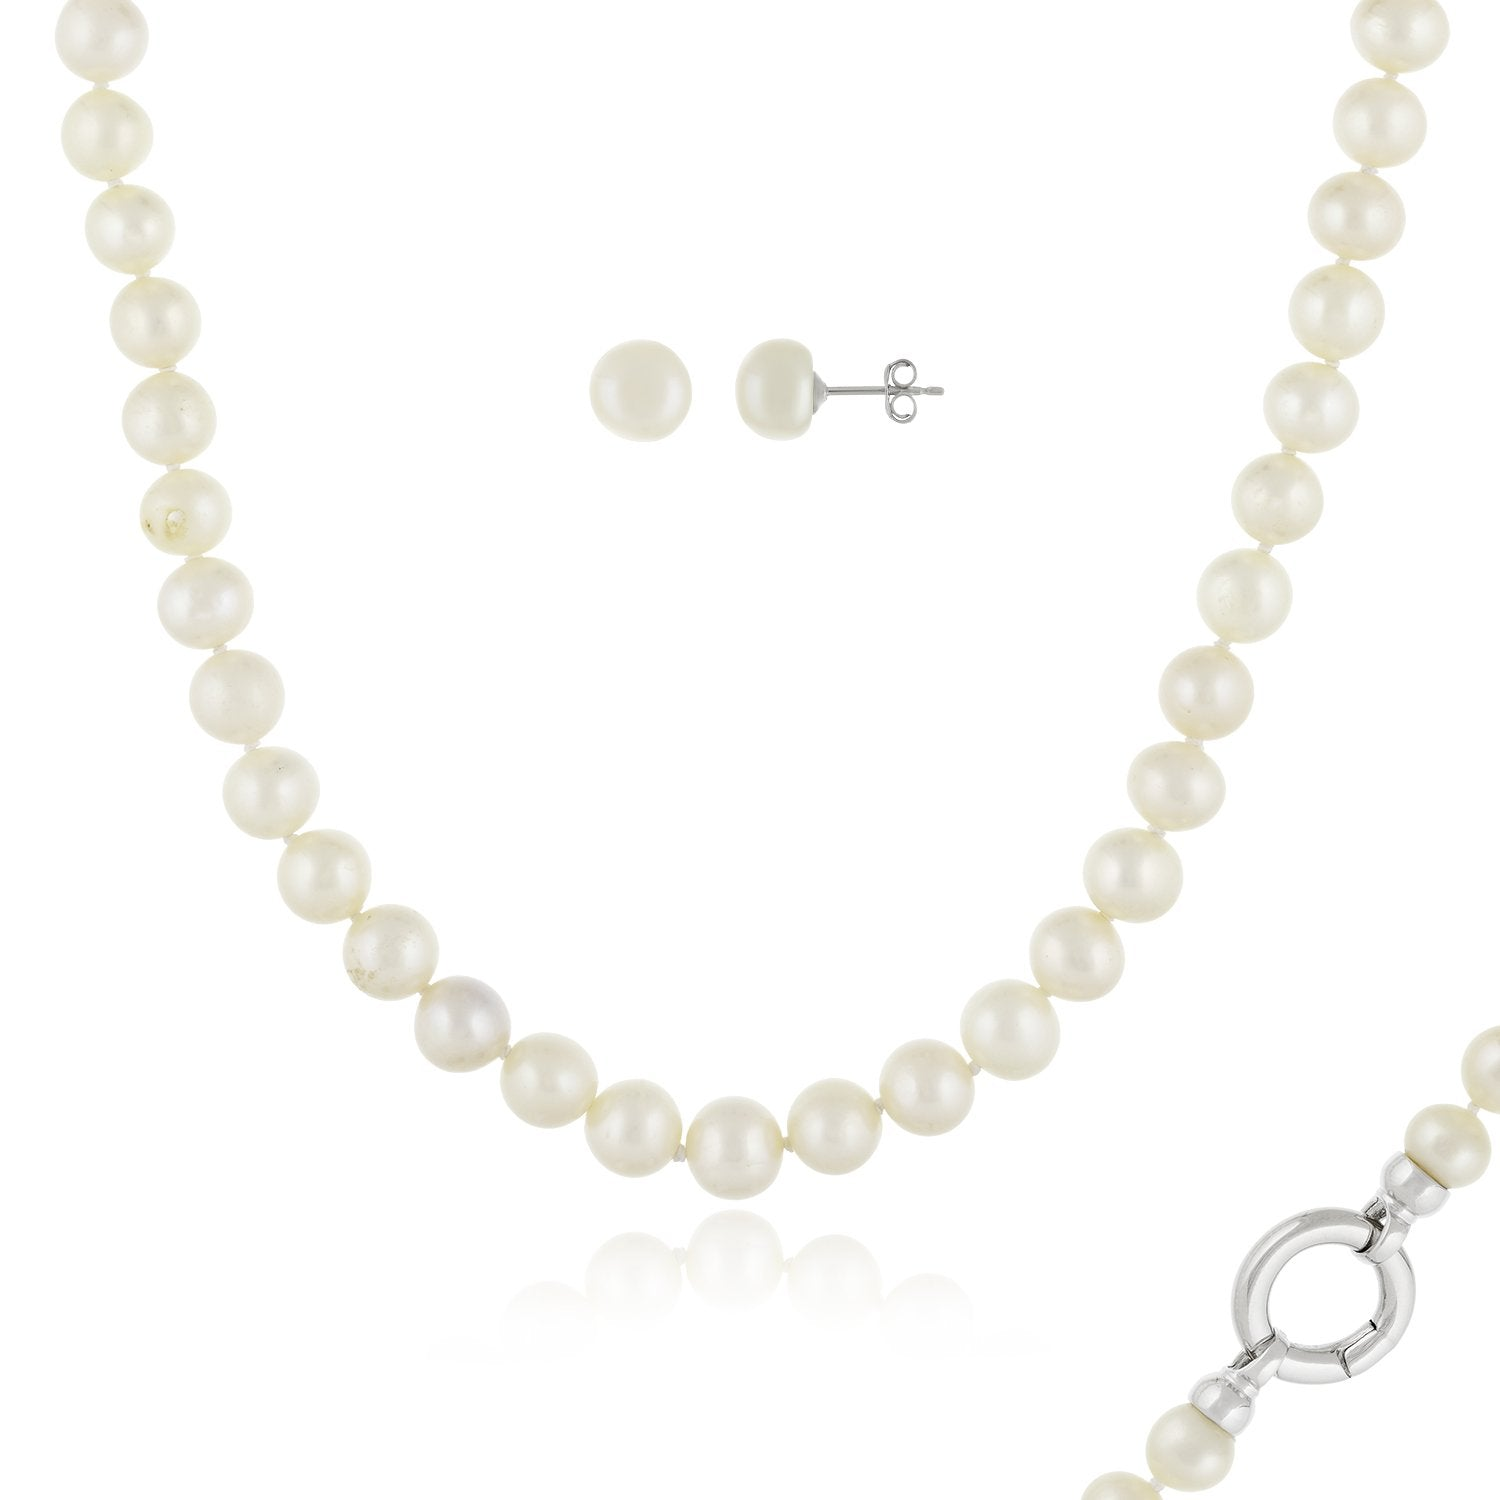 Magnificent 2 Pierce Pearl Necklace Set